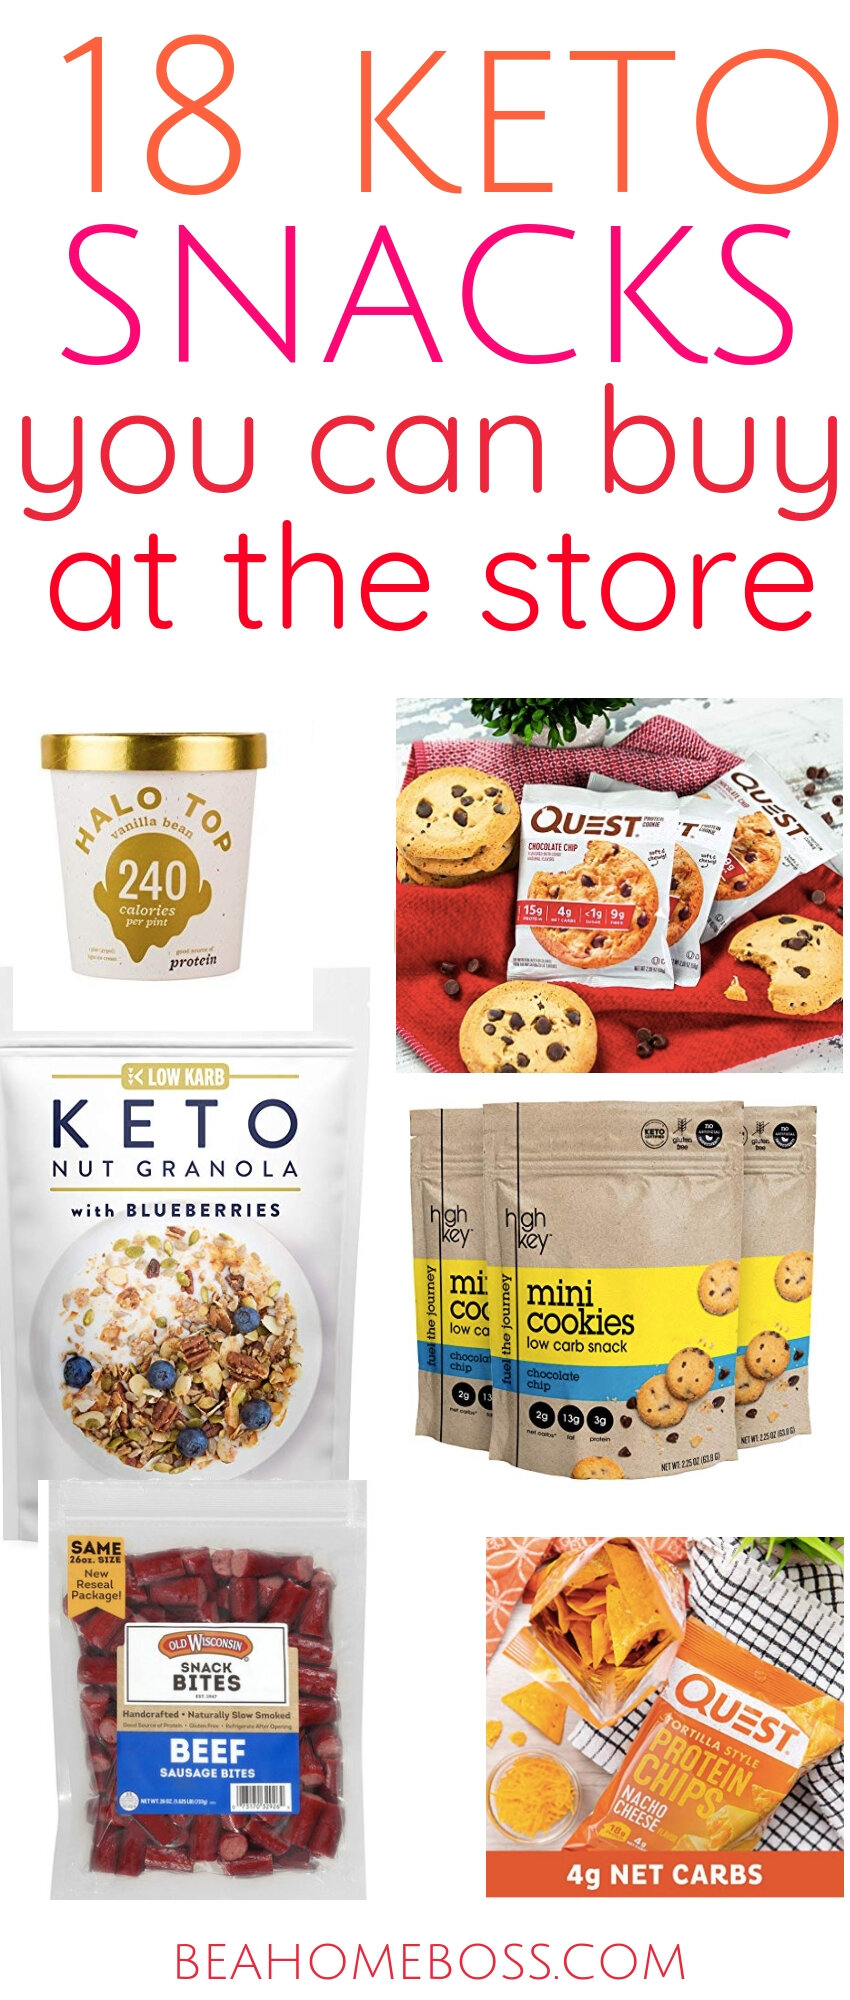 keto snacks you can buy at the store.jpg